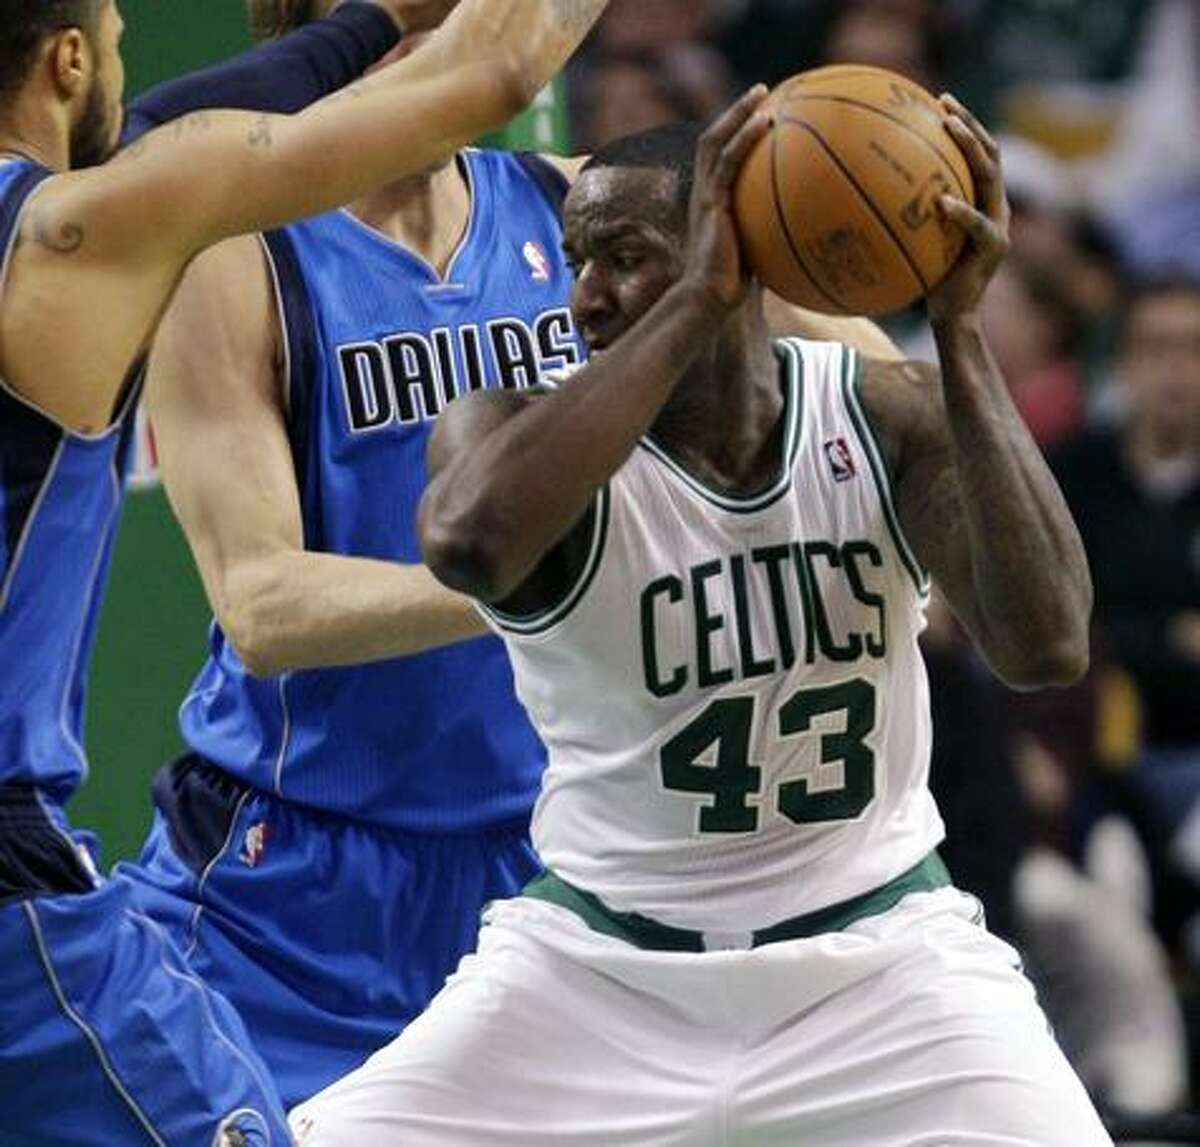 Boston Celtics center Kendrick Perkins (43) can not find his way through the Dallas Mavericks defense to the basket during the second half of their NBA basketball game at the Garden in Boston, Friday, Feb. 4, 2011. The Mavericks defeated the Celtics 101-97. (AP Photo/Stephan Savoia)